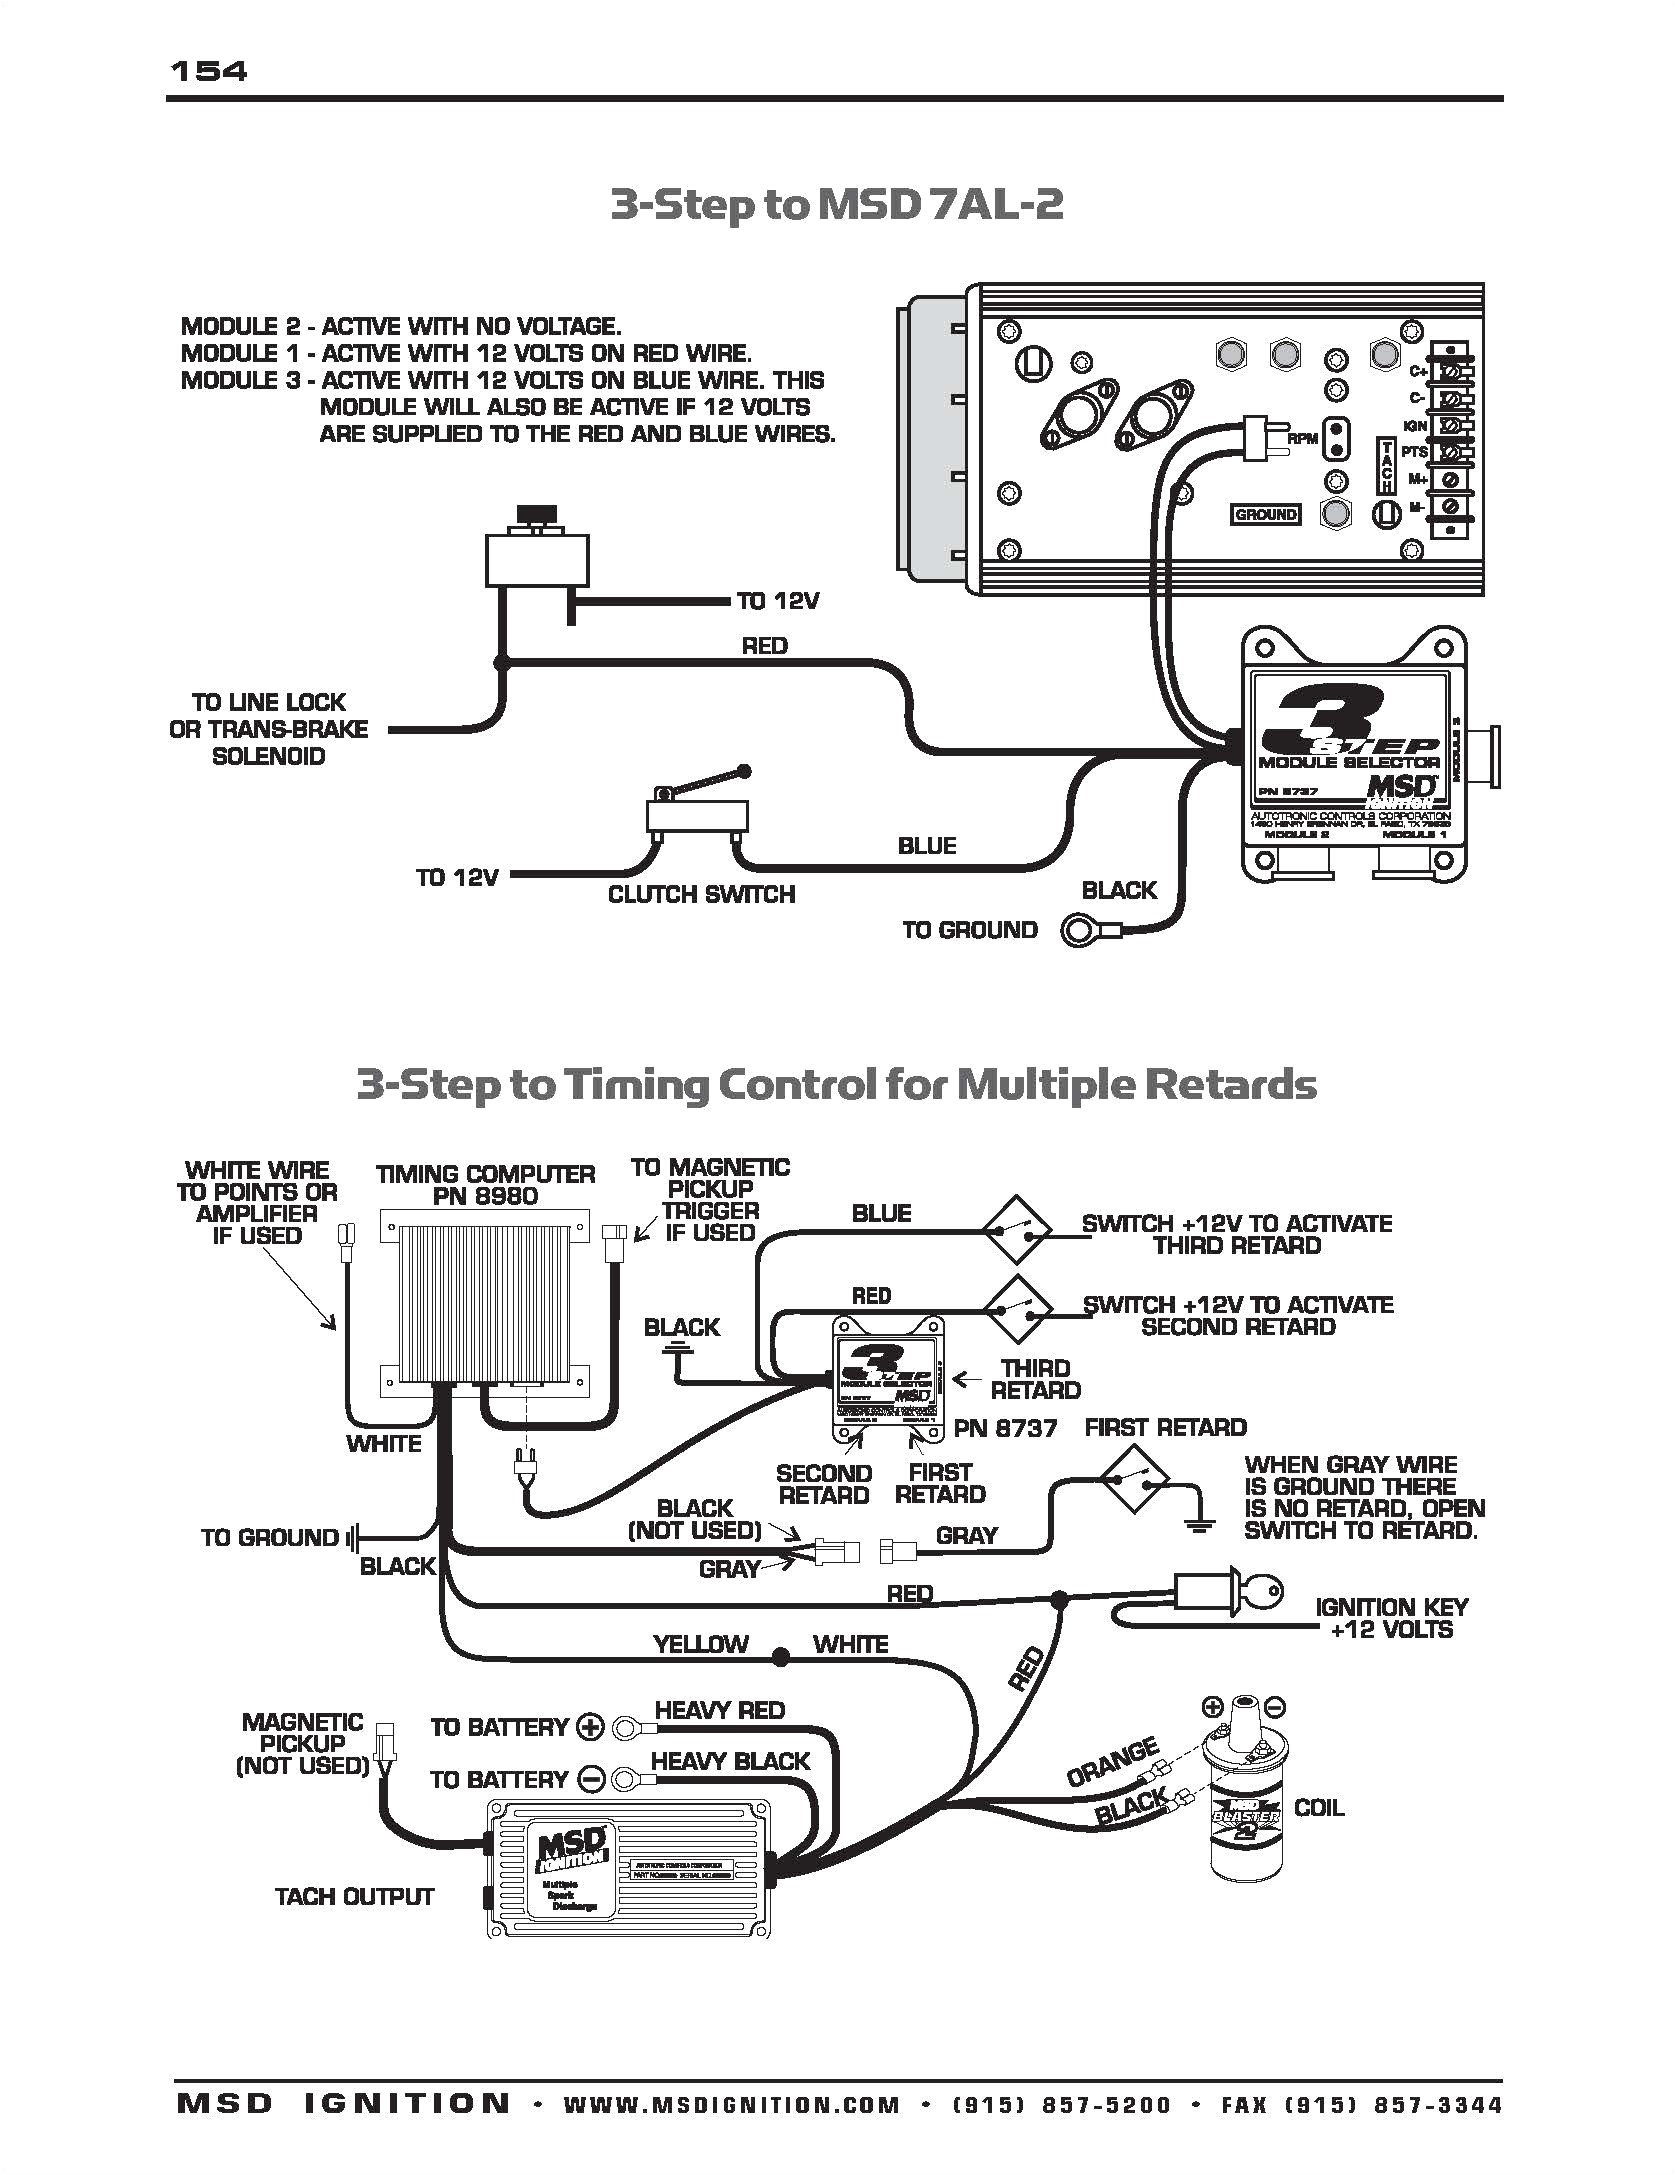 john deere la115 wiring diagram new john deere 510 ignition switch diagram explained wiring diagrams